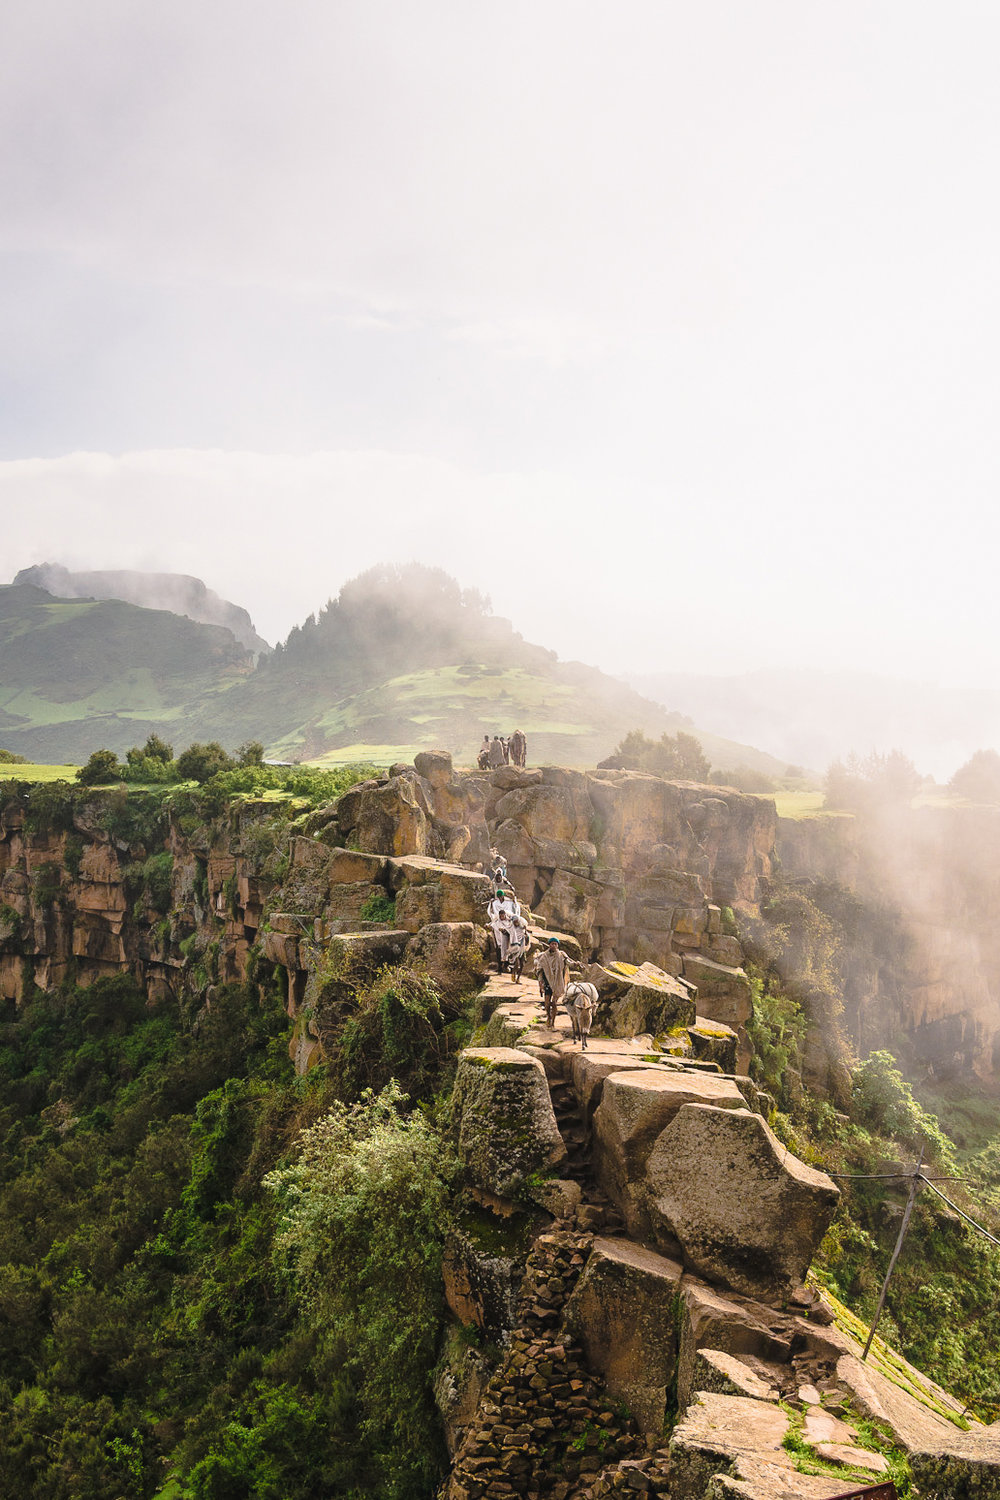 ETHIOPIA - Ethiopia's Tigray and Afar regions call on the adventure seekers. The Danakil depression is an other-worldly landscape of hotsprings, volcanoes and desert. In Tigray, ancient churches hewn into the canyon cliffs demand a series of challenging hikes for the scenic rewards.